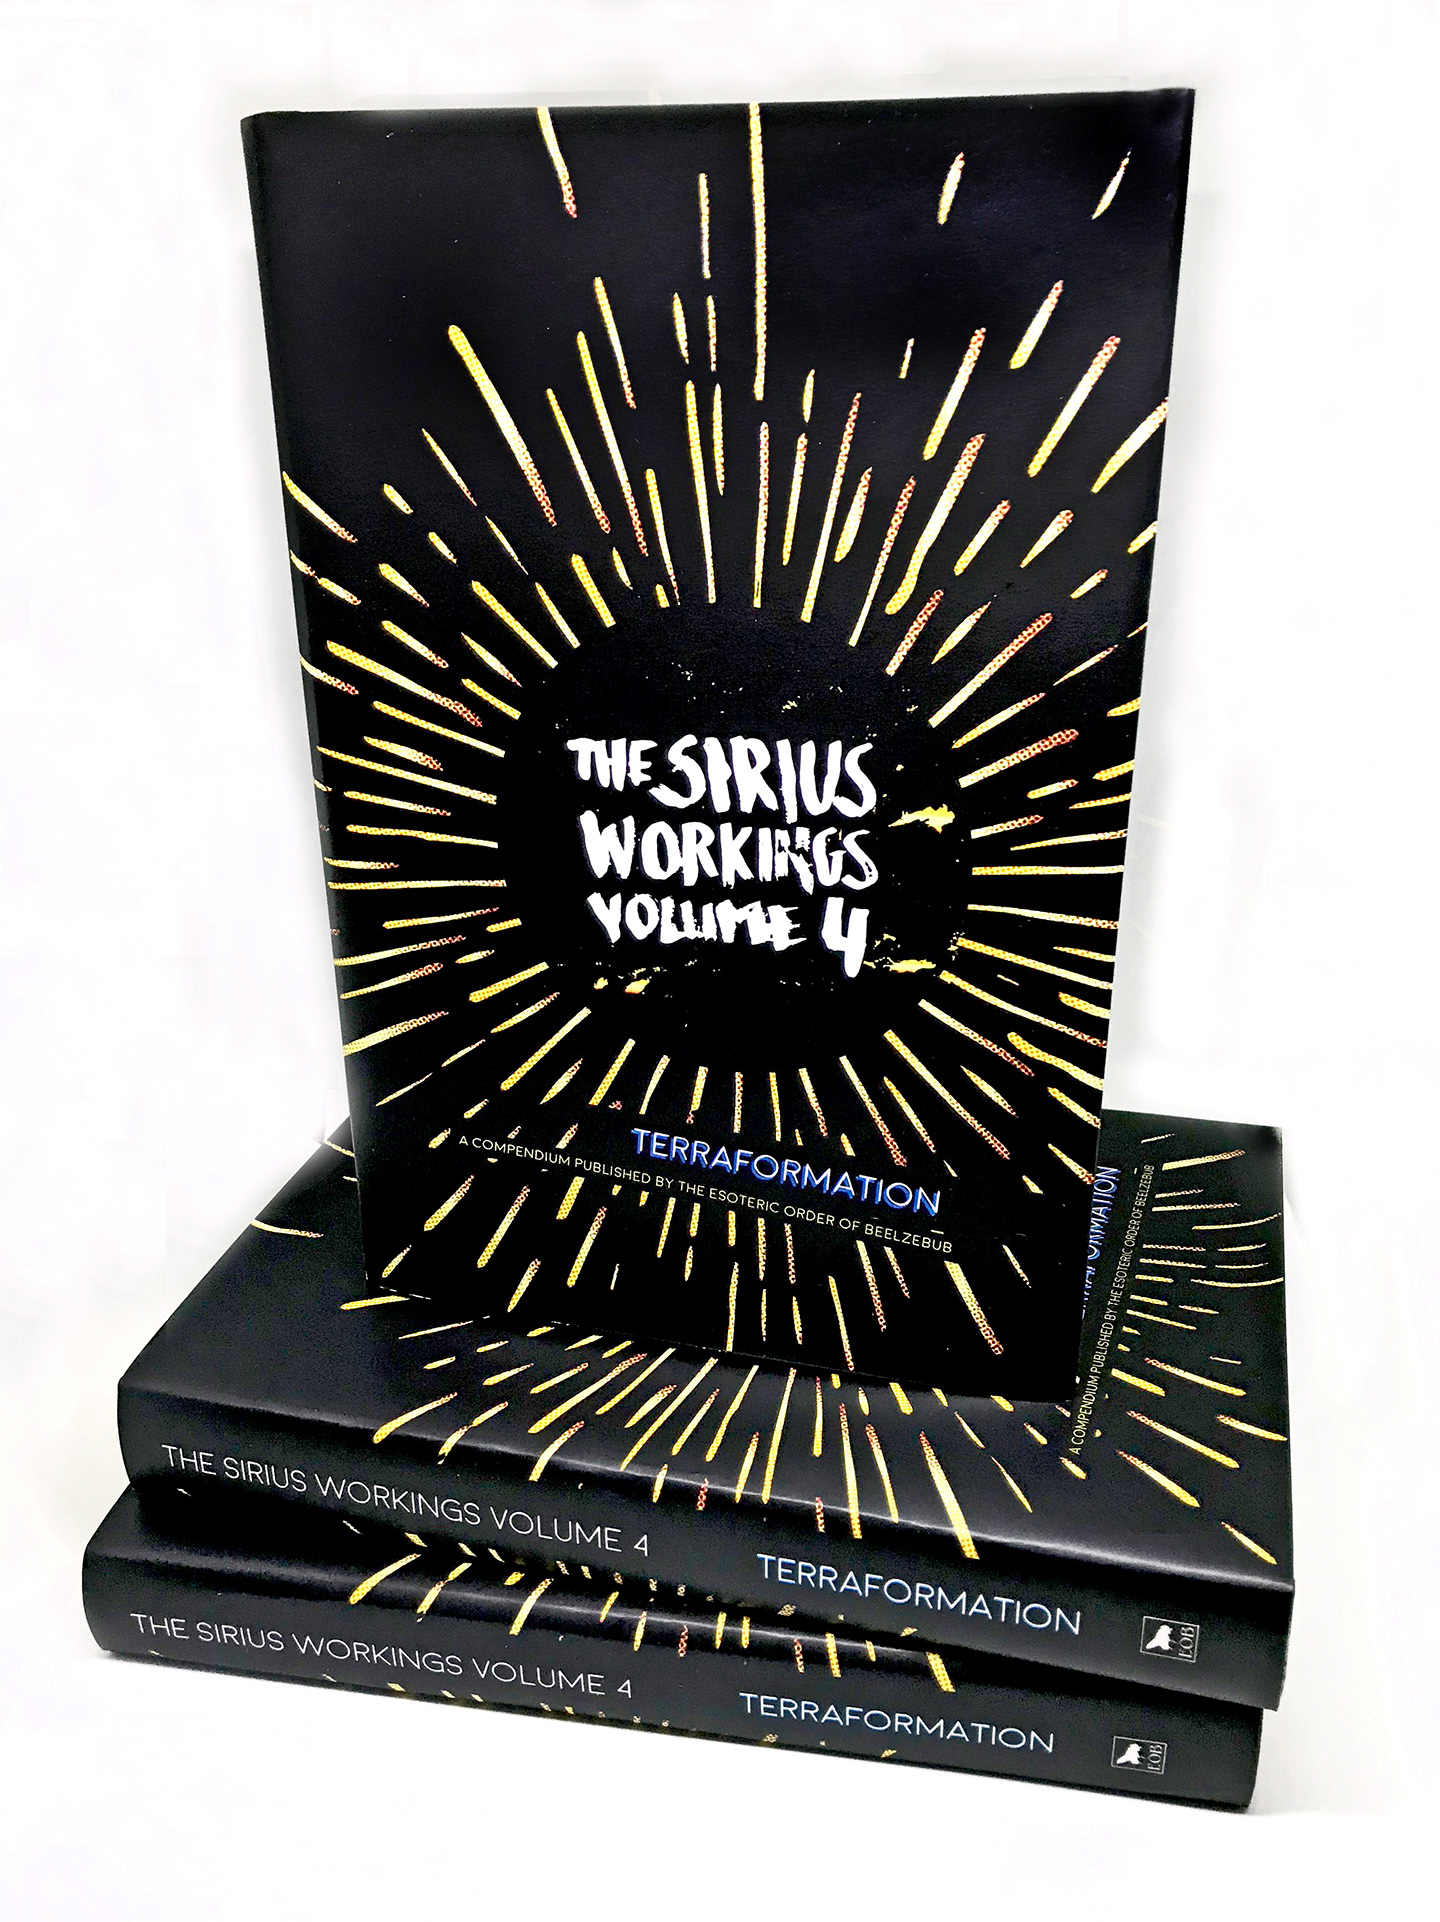 The Sirius Workings Vol. 4